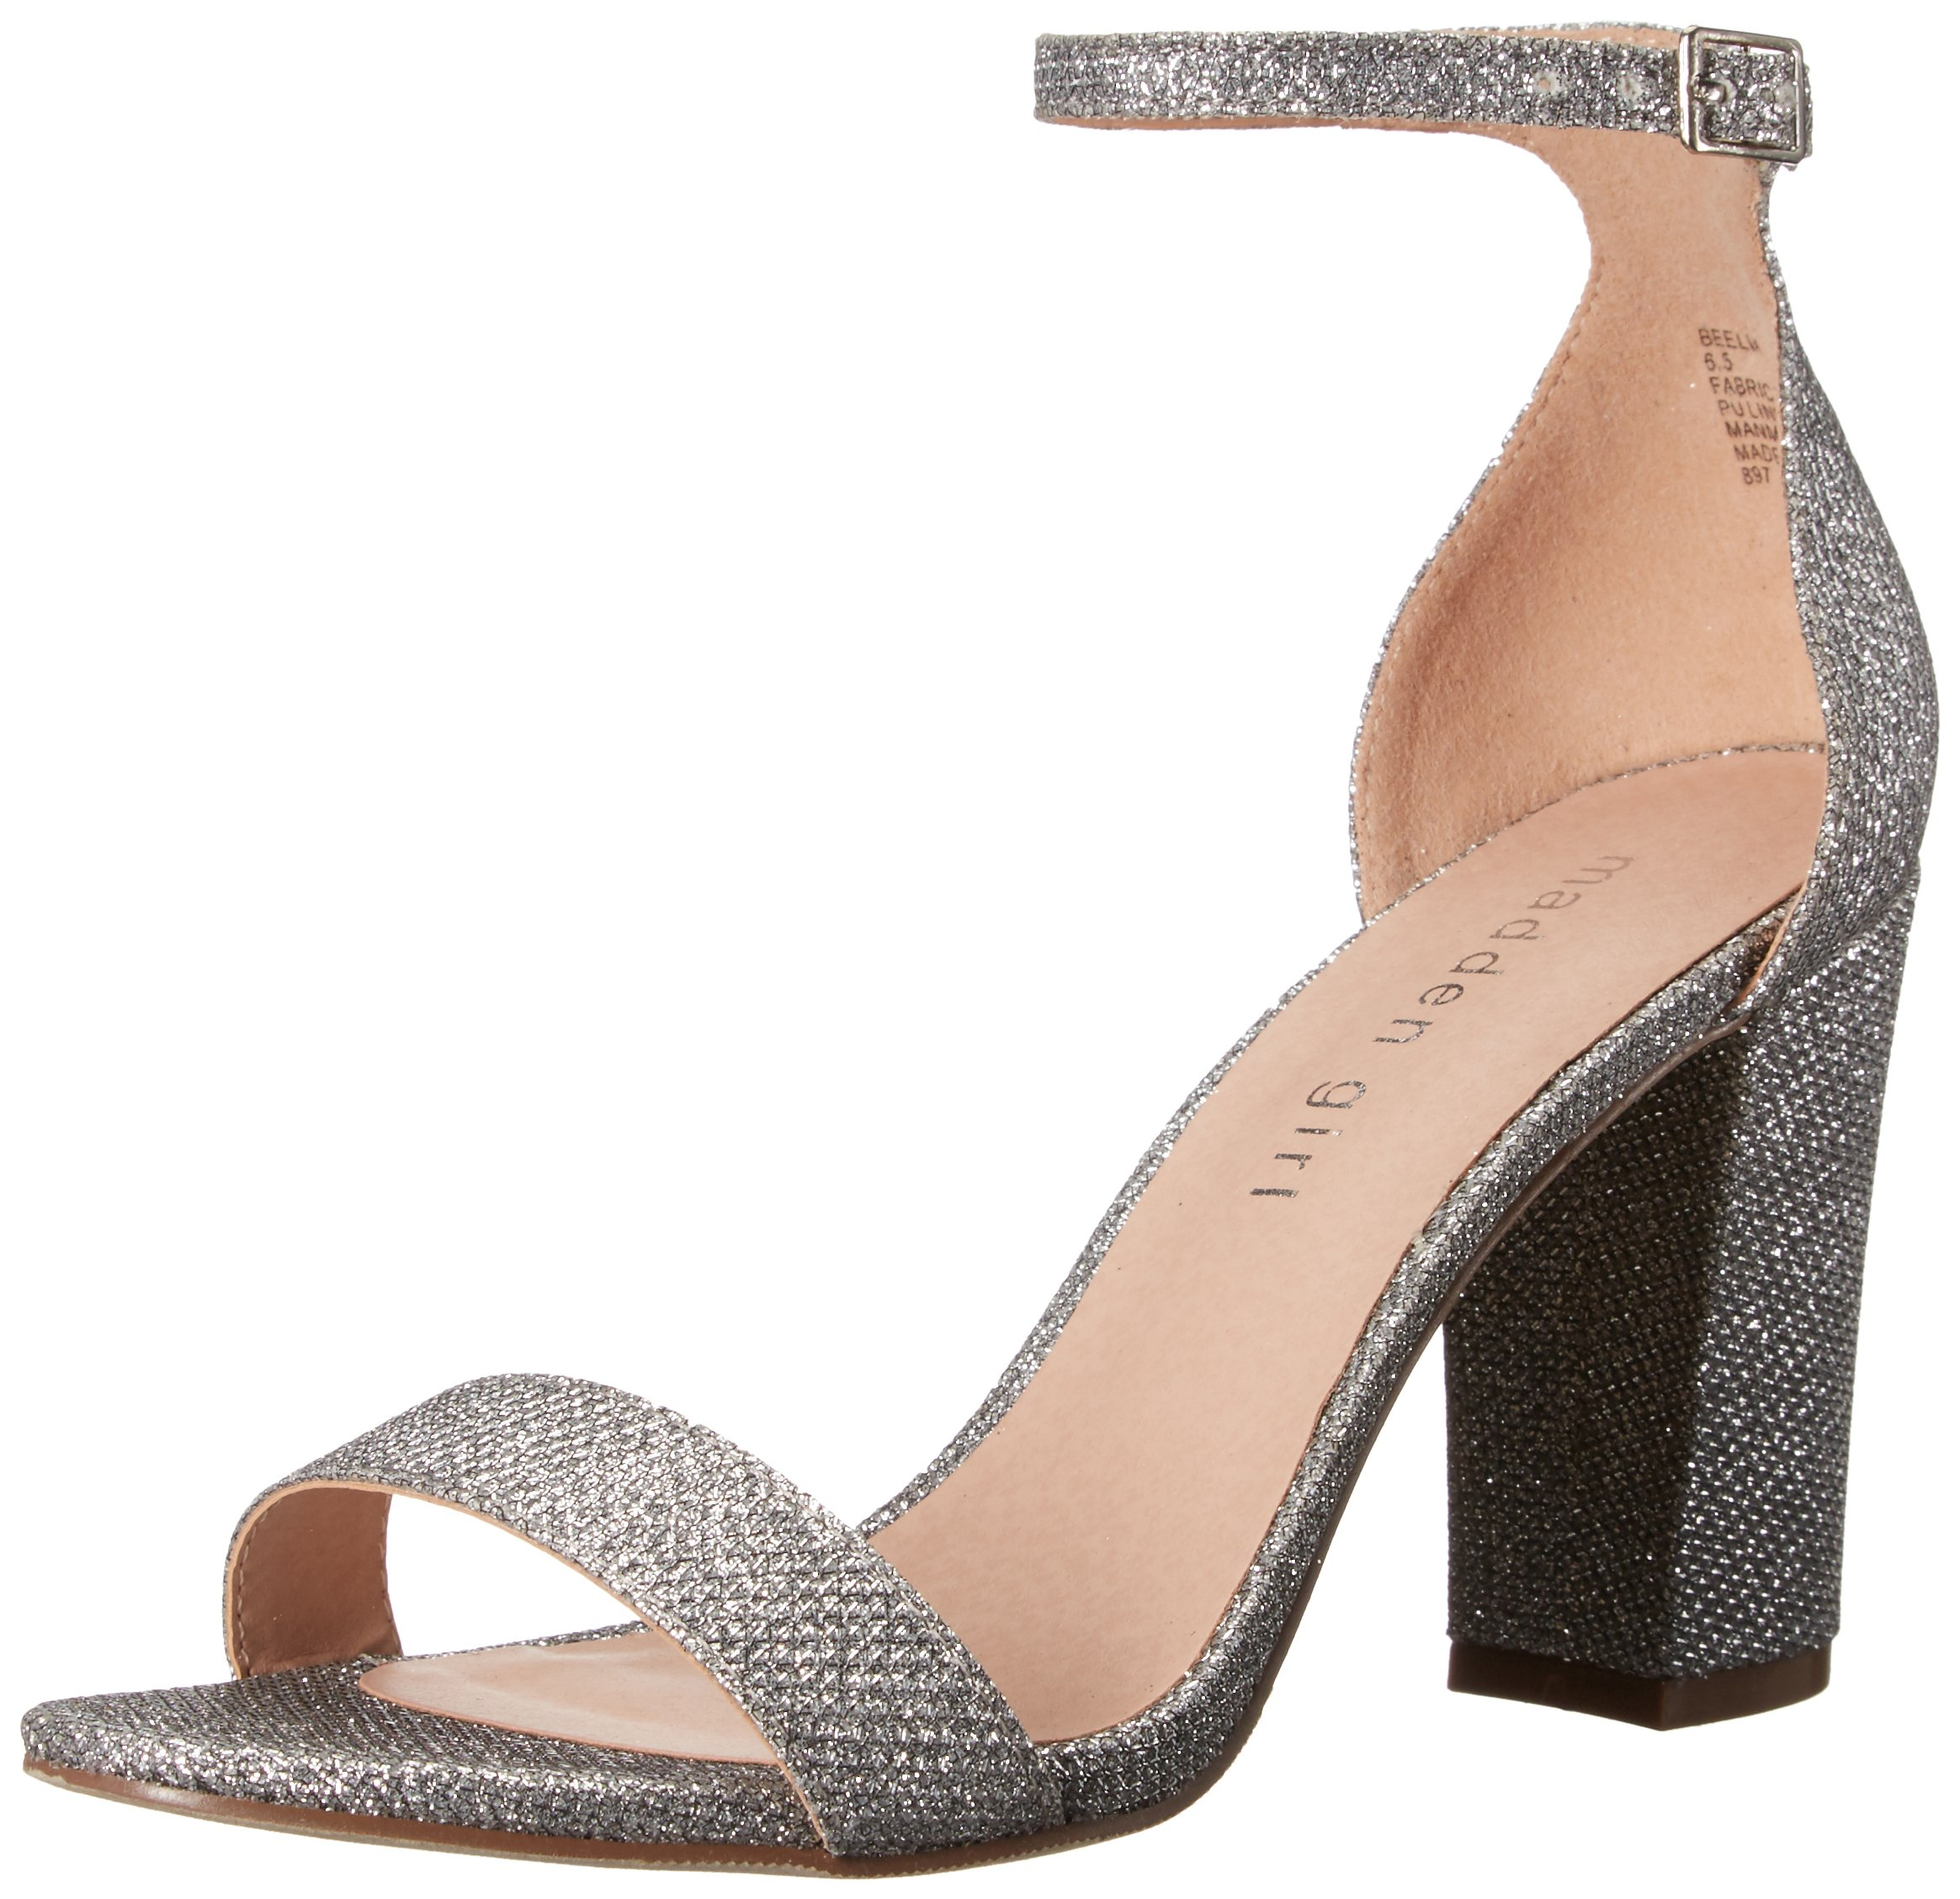 Madden Girl Women's Beella Dress Sandal, Silver, 7 M US